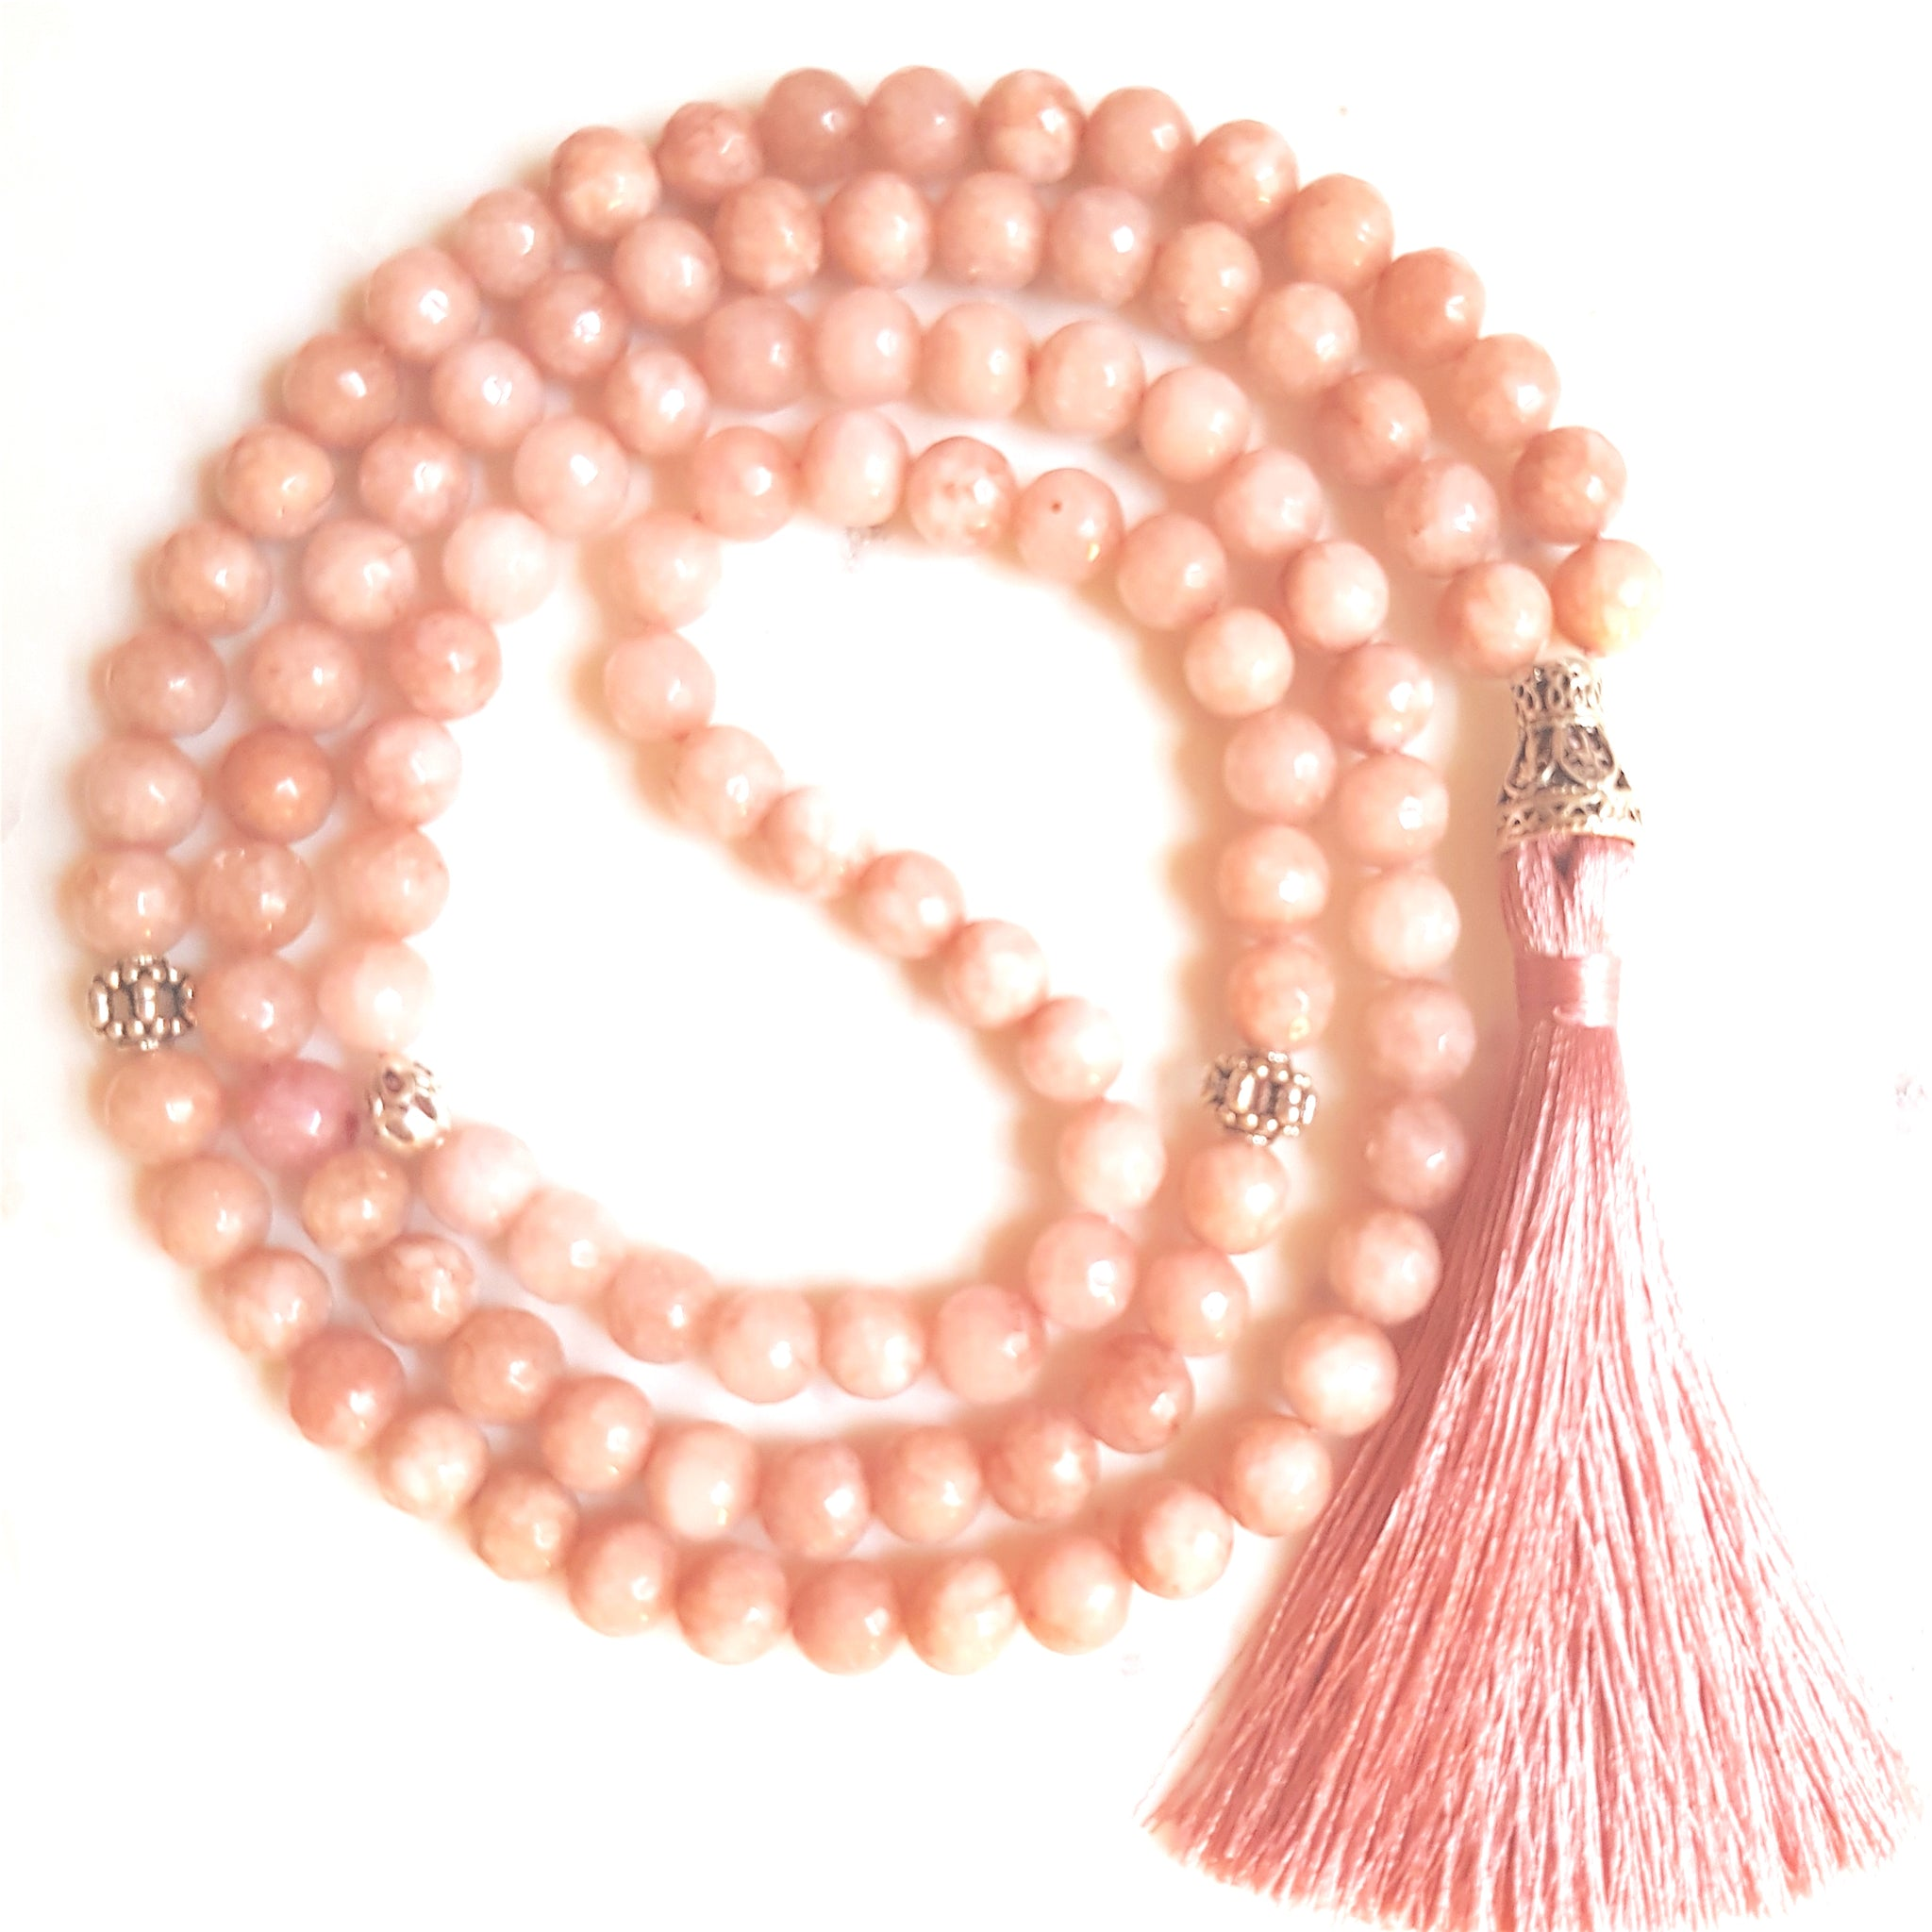 Aria Mala Atelier's unique one-of-a-kind pink jadeite gemstone meditation japa mala is for yoga meditation empowering spiritual daily practise and intention setting